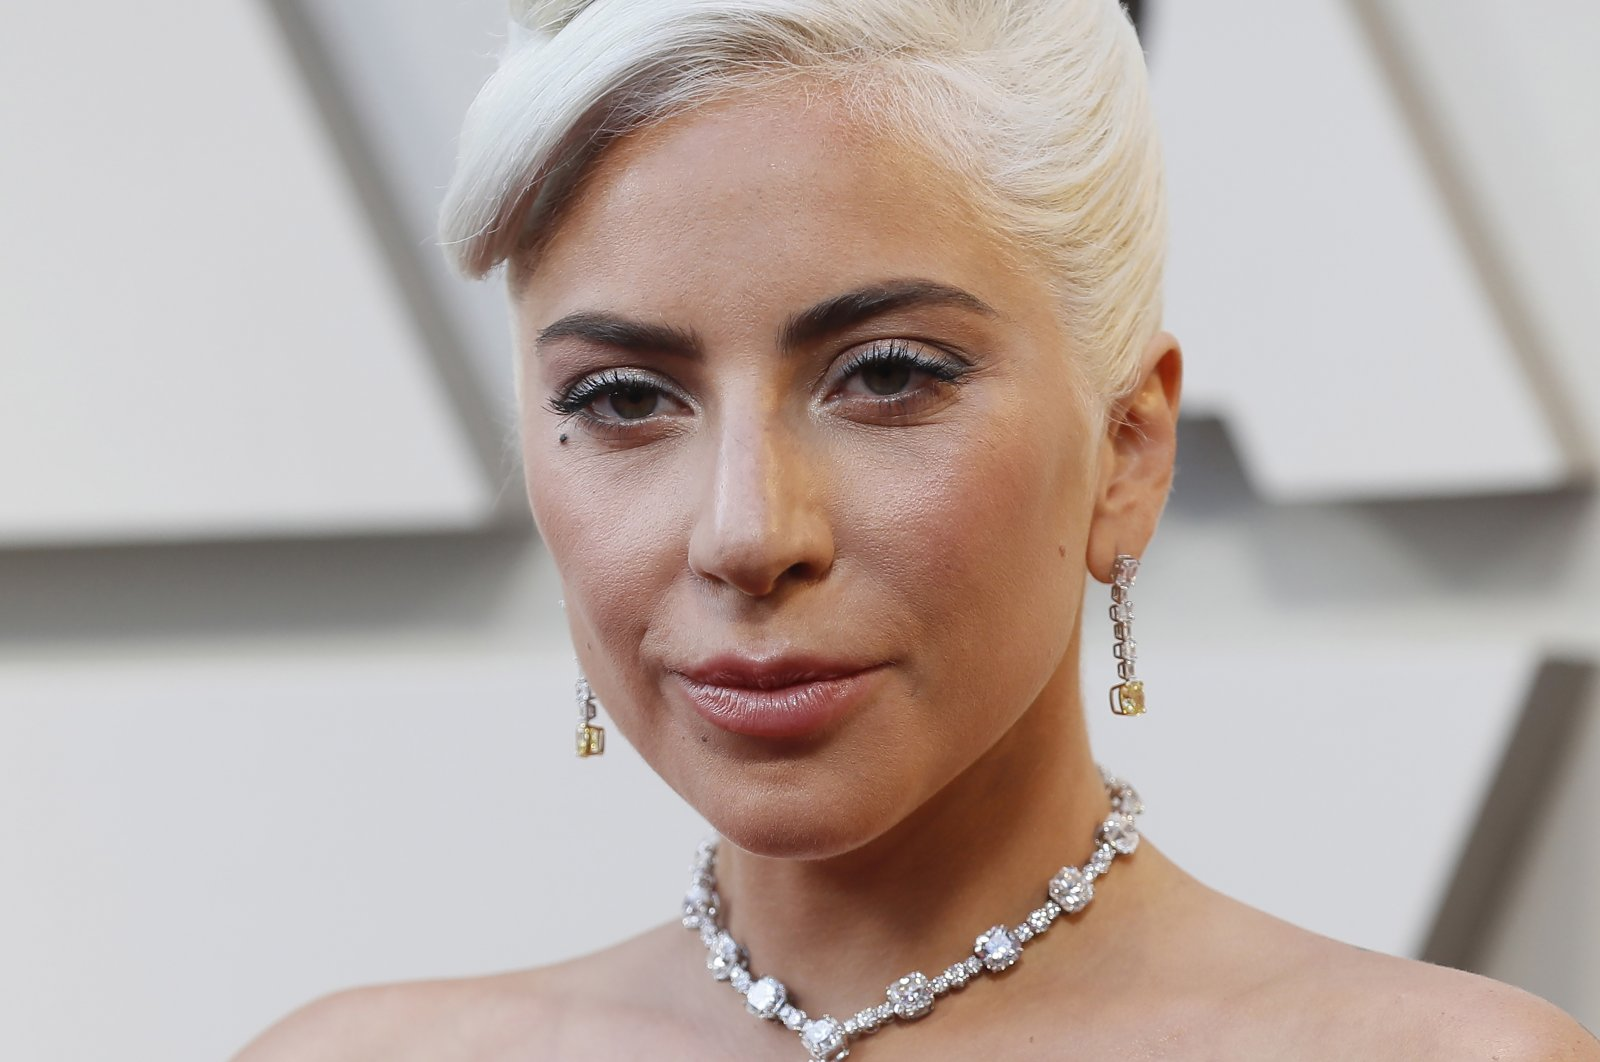 Lady Gaga arrives for the 91st annual Academy Awards ceremony at the Dolby Theatre in Hollywood, California, U.S., Feb. 24, 2019. (EPA File Photo)